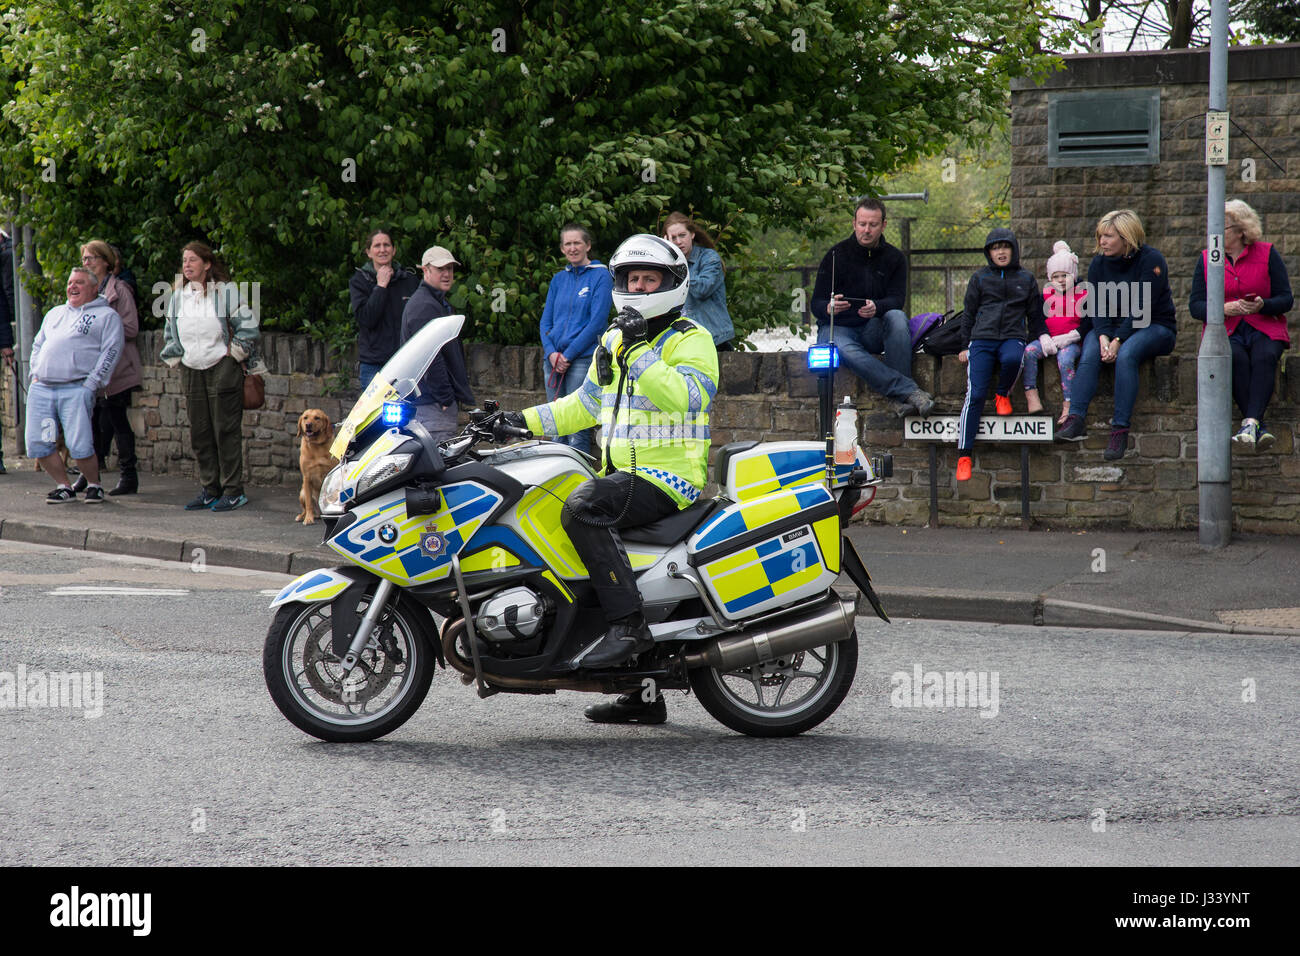 Police motorbike and rider controlling crowd - Stock Image